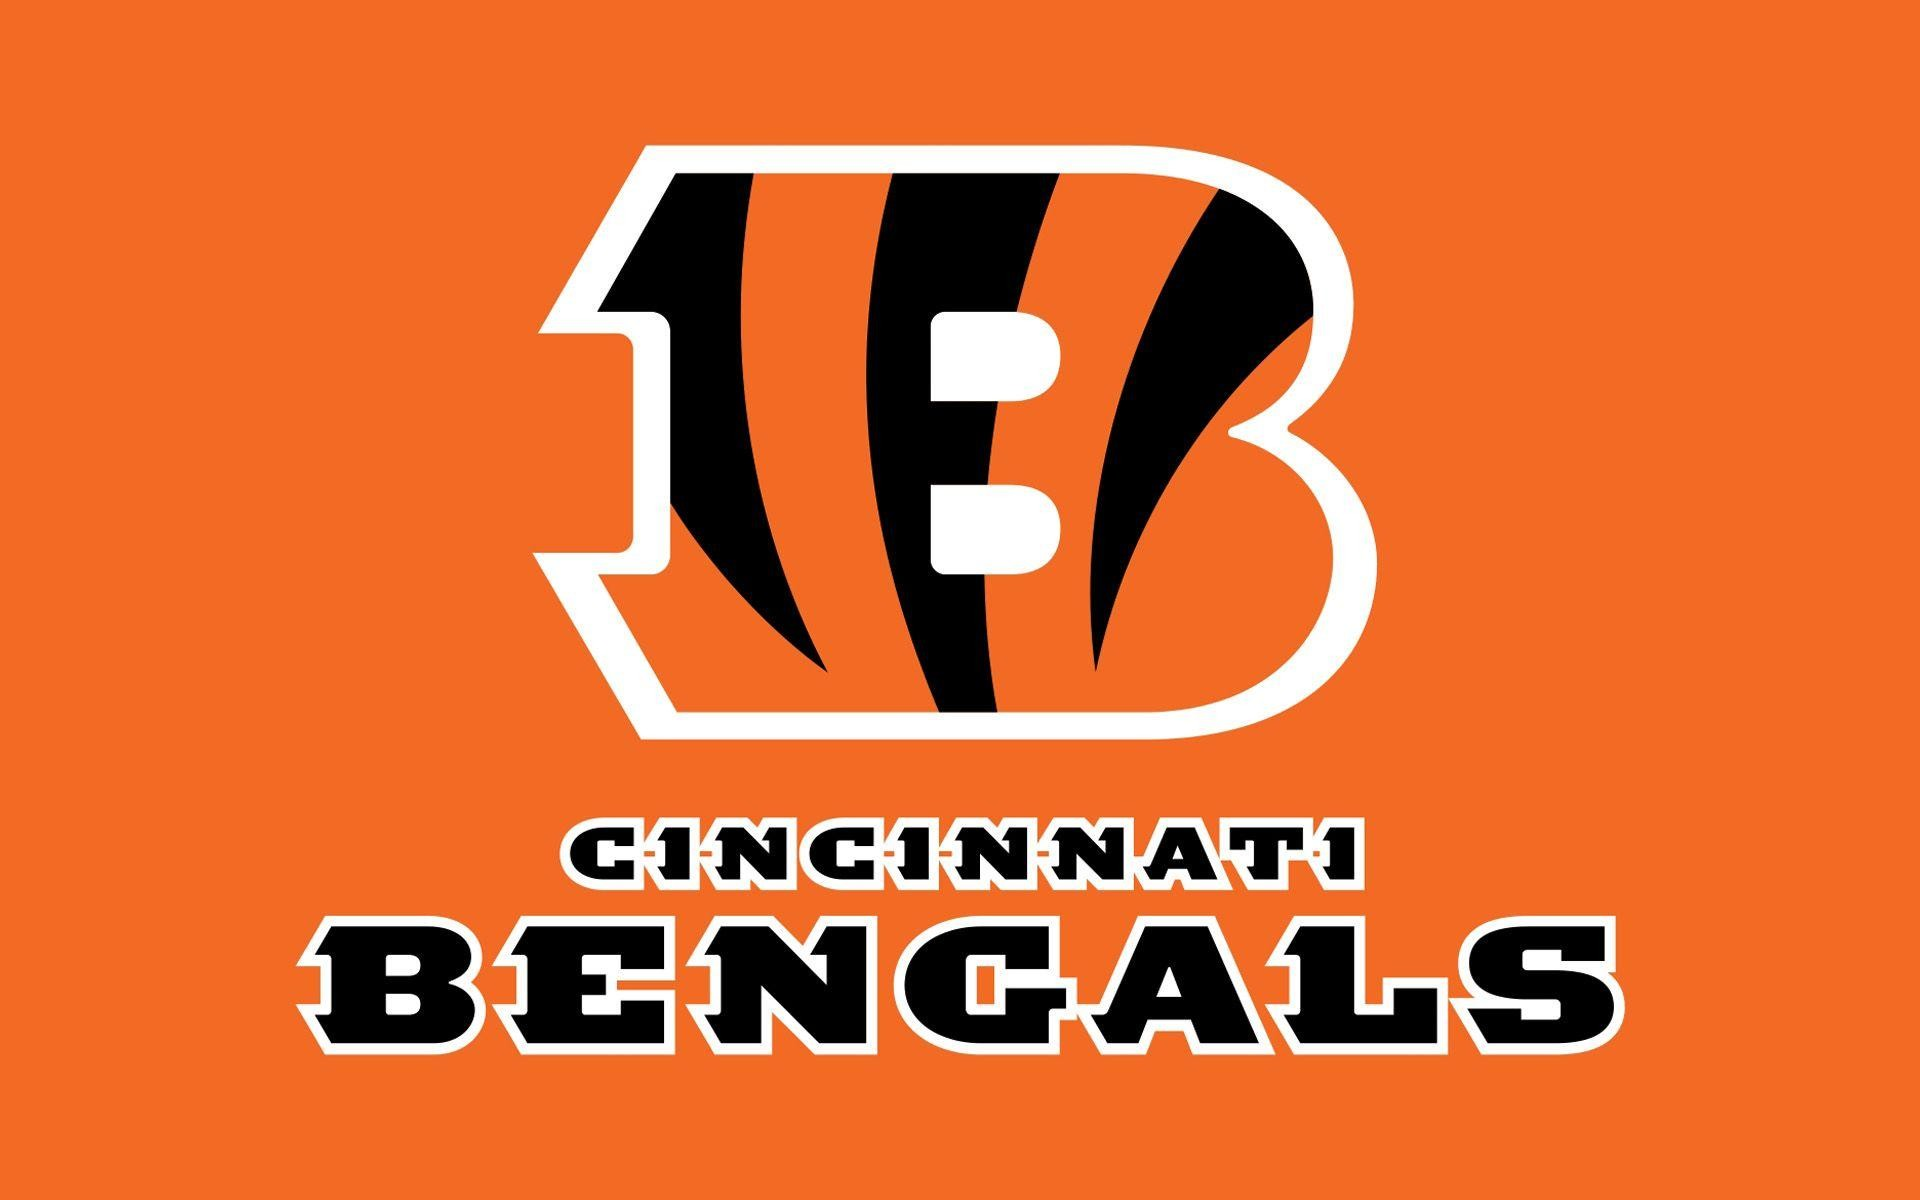 Bengals Wallpapers – Full HD wallpaper search